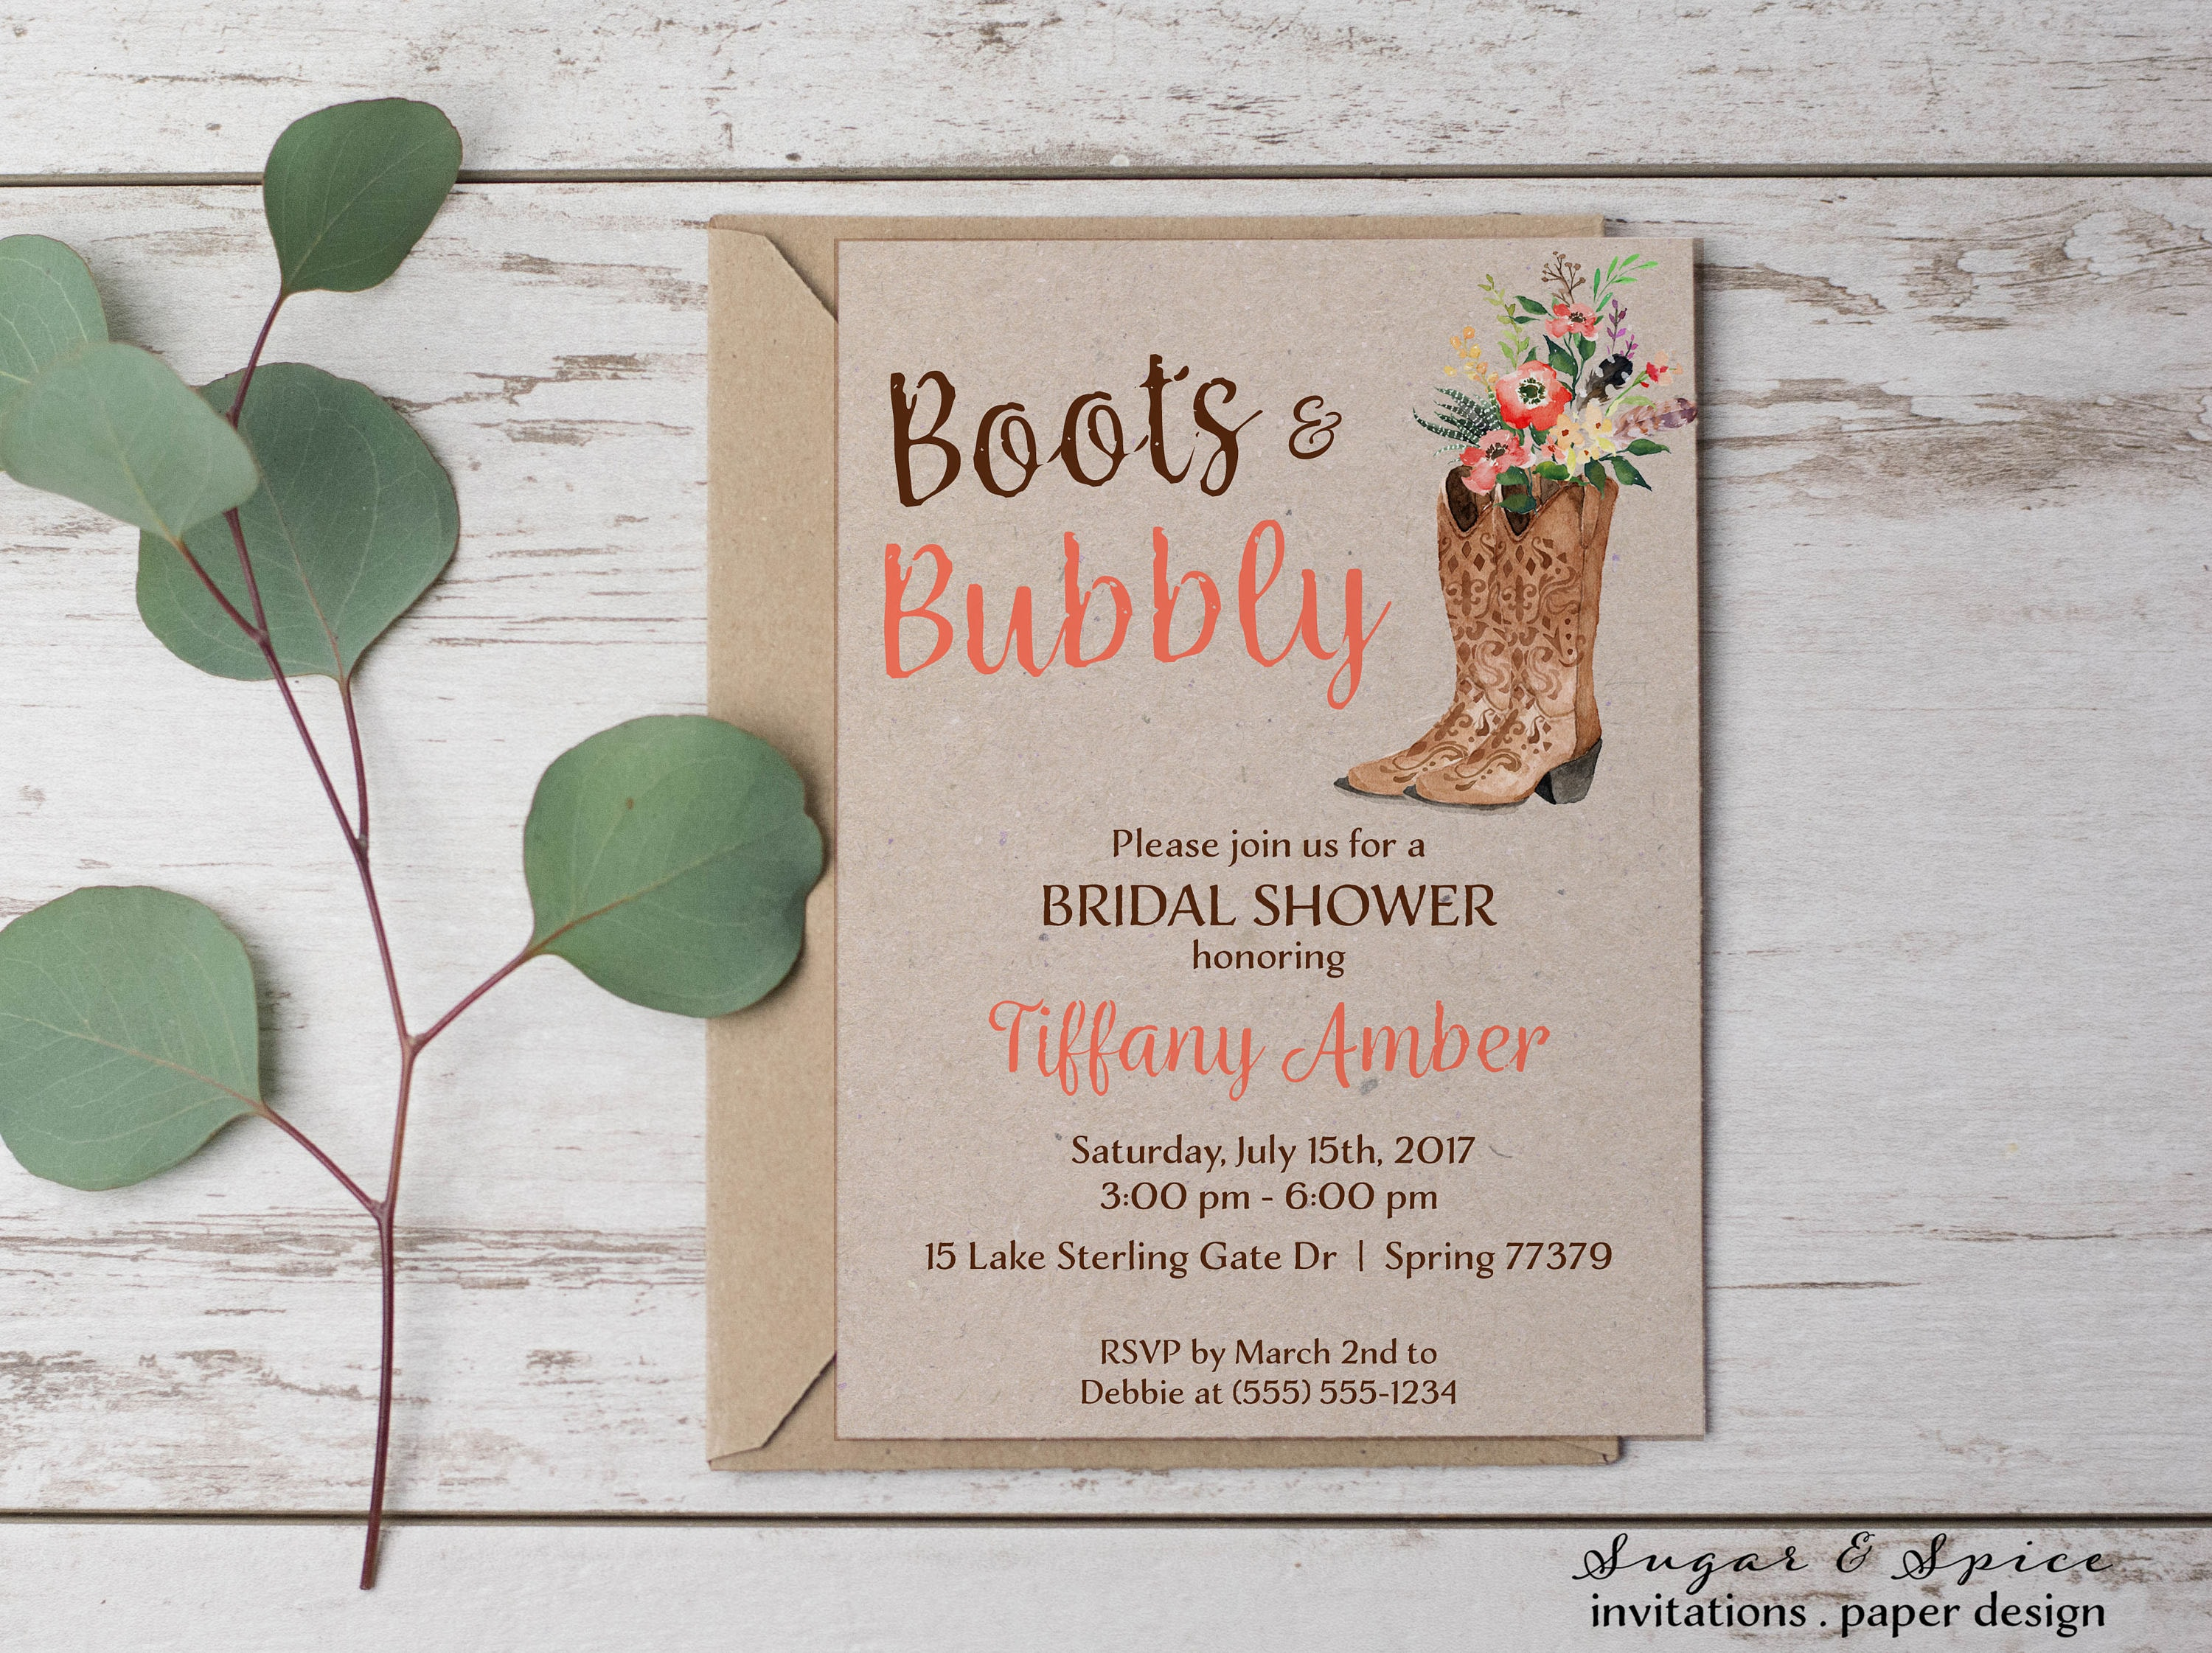 Boots Wedding Invitations: Western Rustic Bridal Shower Invitation Boots And Bubbly